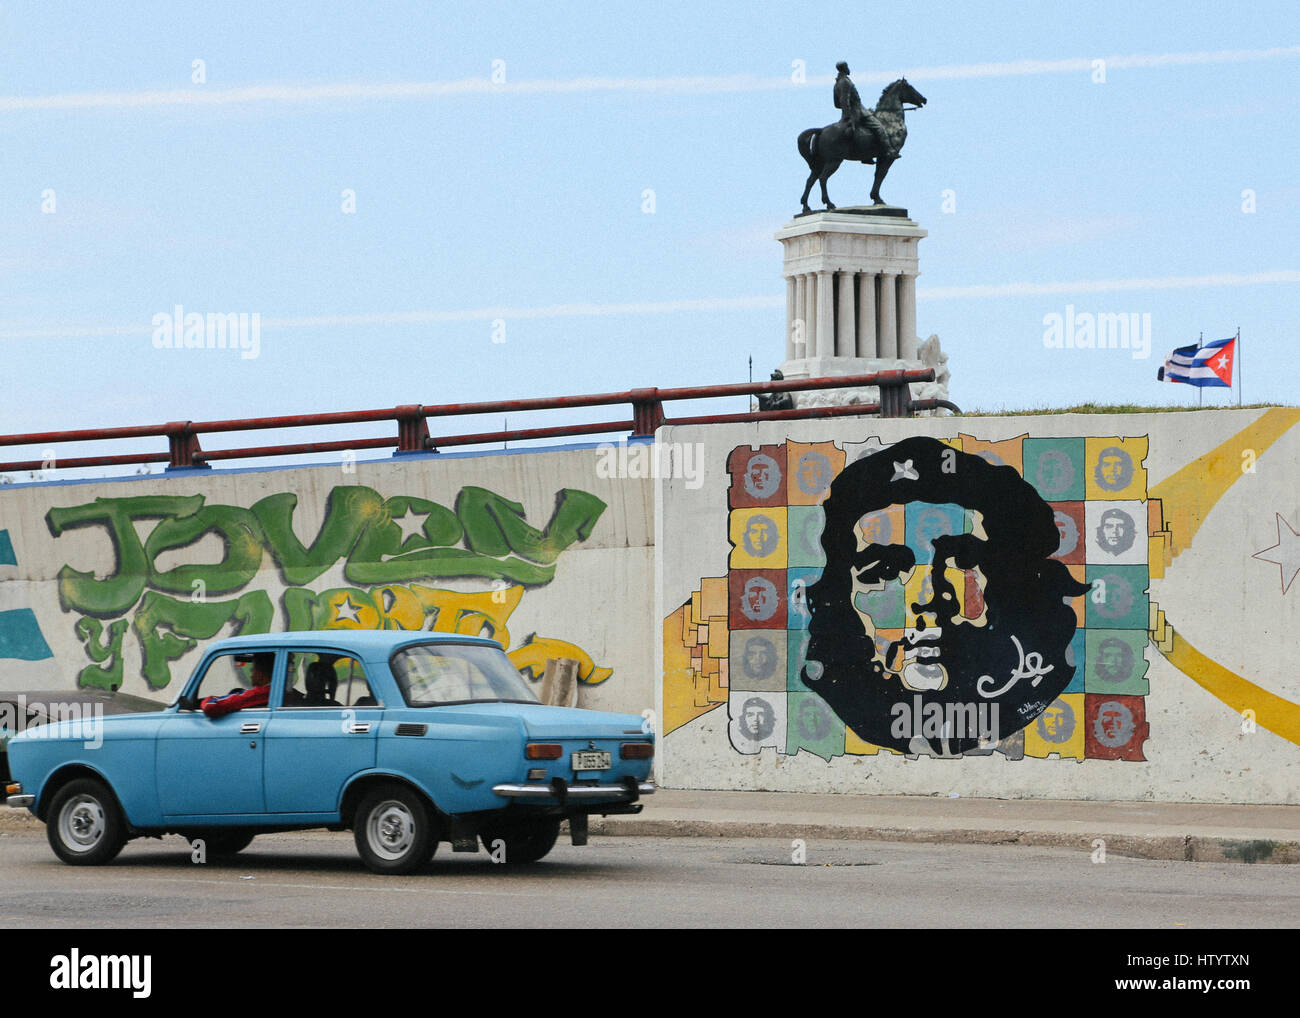 An old blue Lada car seen on the road by the Maximo Gomez Monument and street art depicting Che Guevara in Havana, Cuba Stock Photo